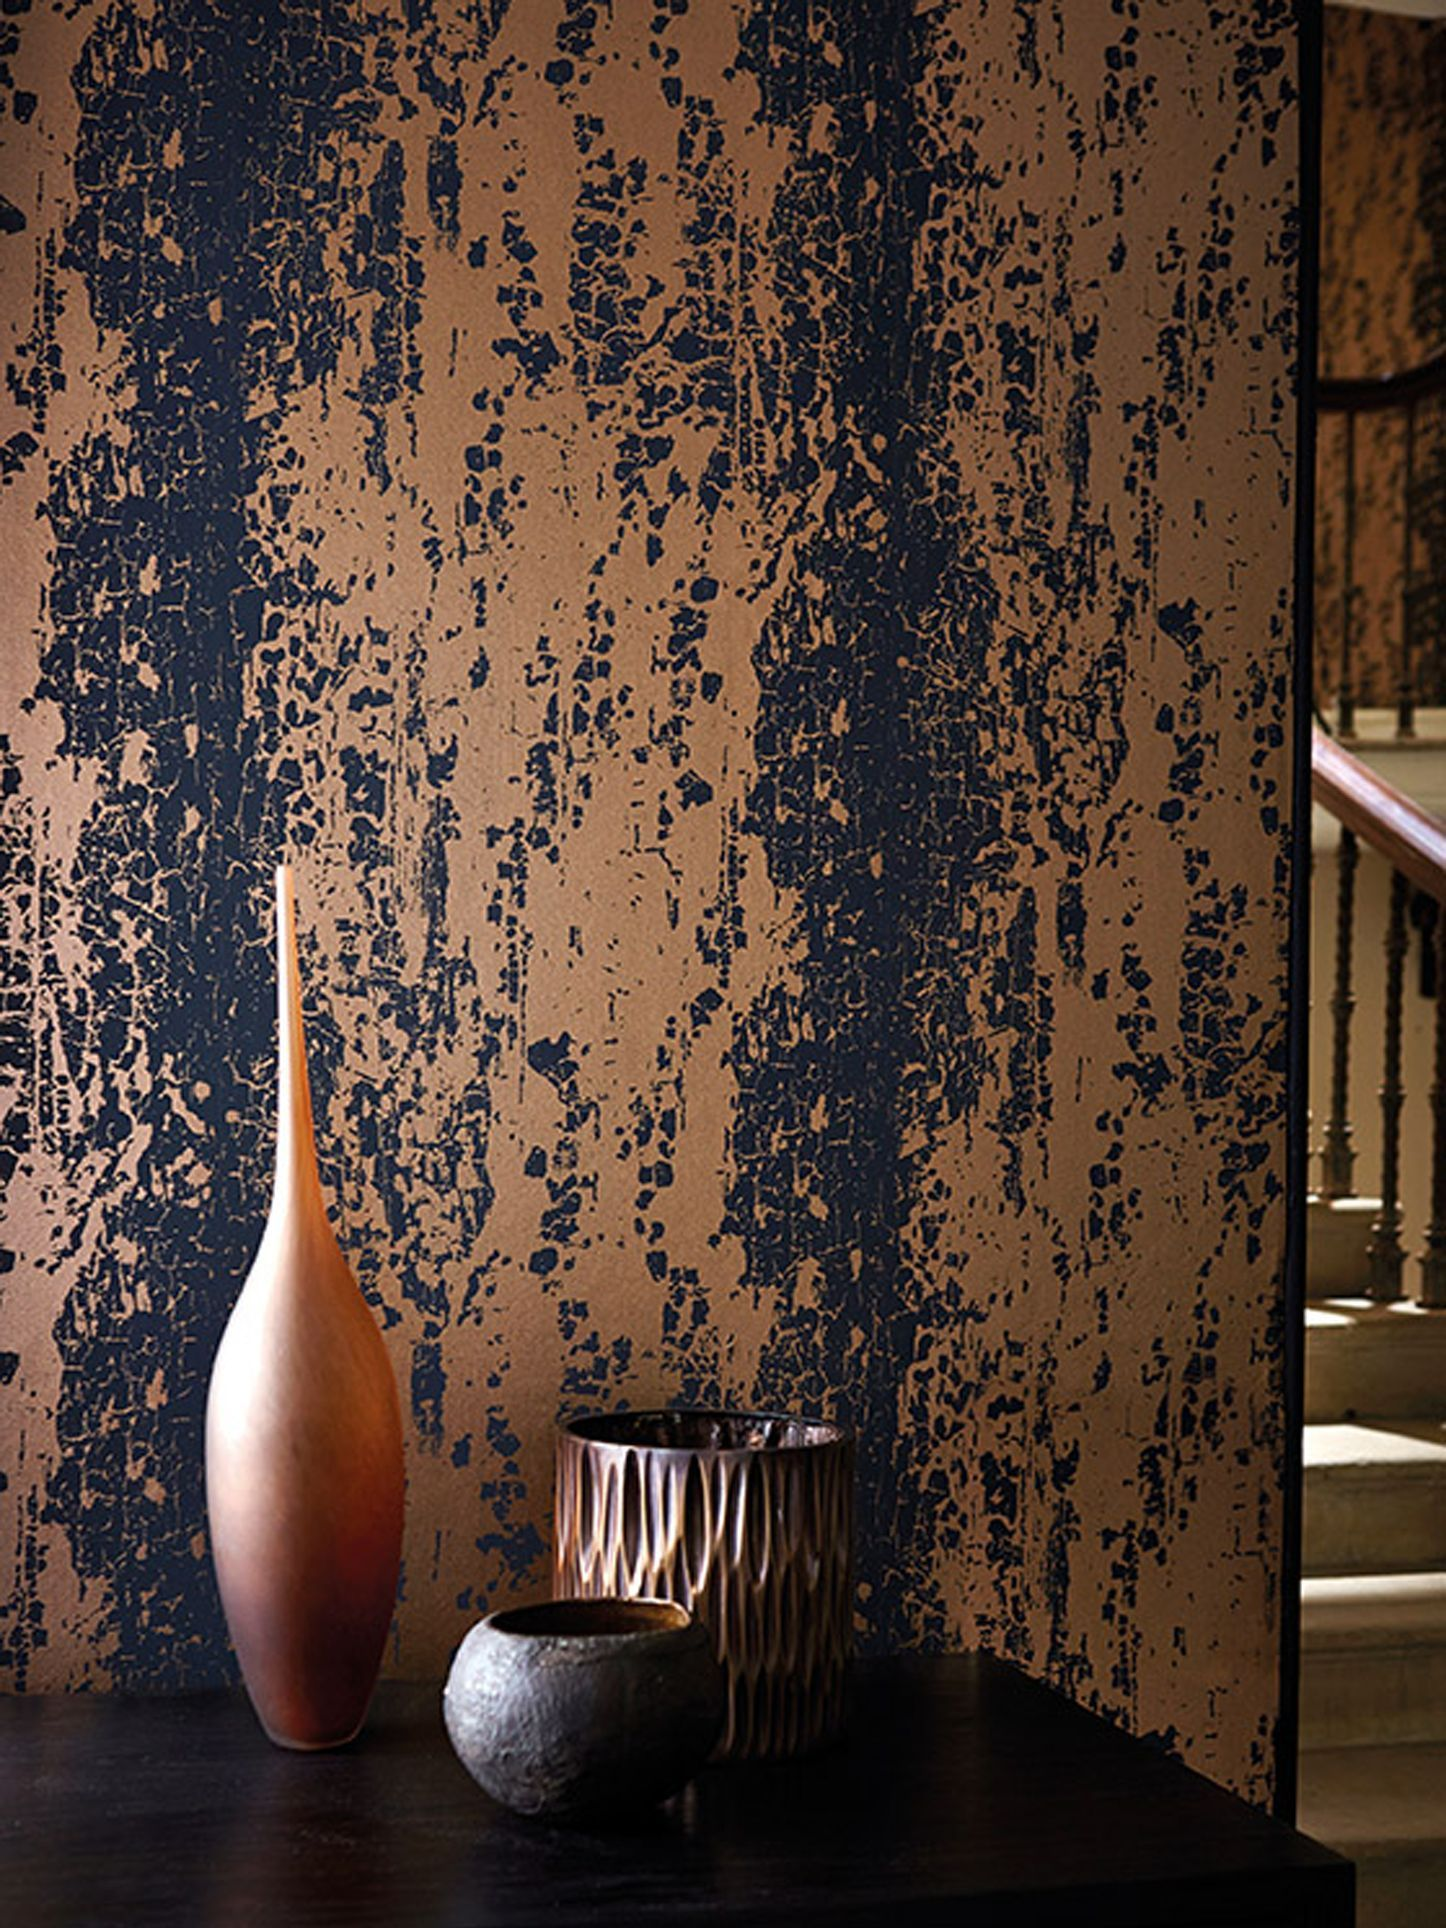 Harlequin Eglomise Paste The Wall Wallpaper Lapis 110623 In 2020 Wall Wallpaper Harlequin Wallpaper Copper Wallpaper